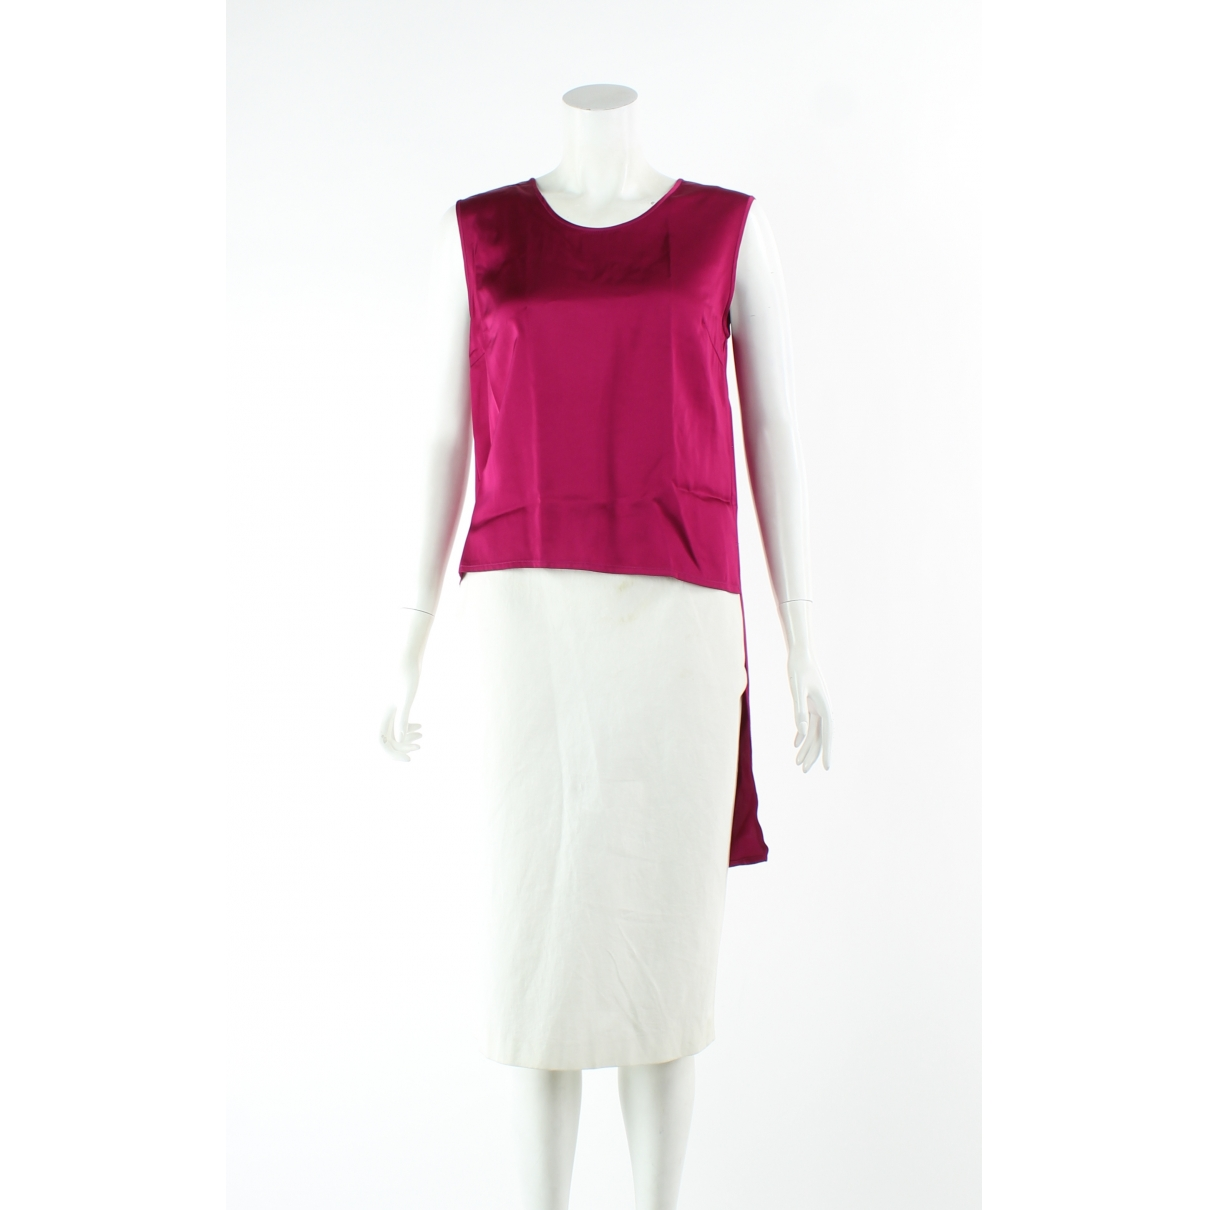 Stella Mccartney \N Pink  top for Women 38 IT